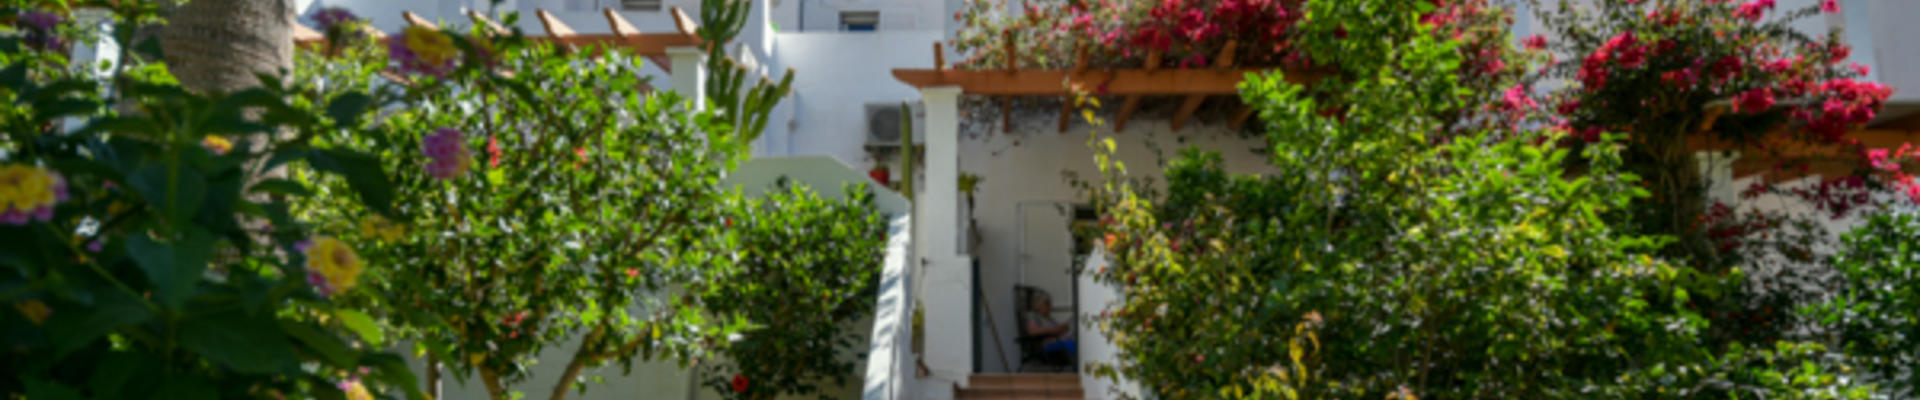 LV773: 2 Bedroom Townhouse for Sale